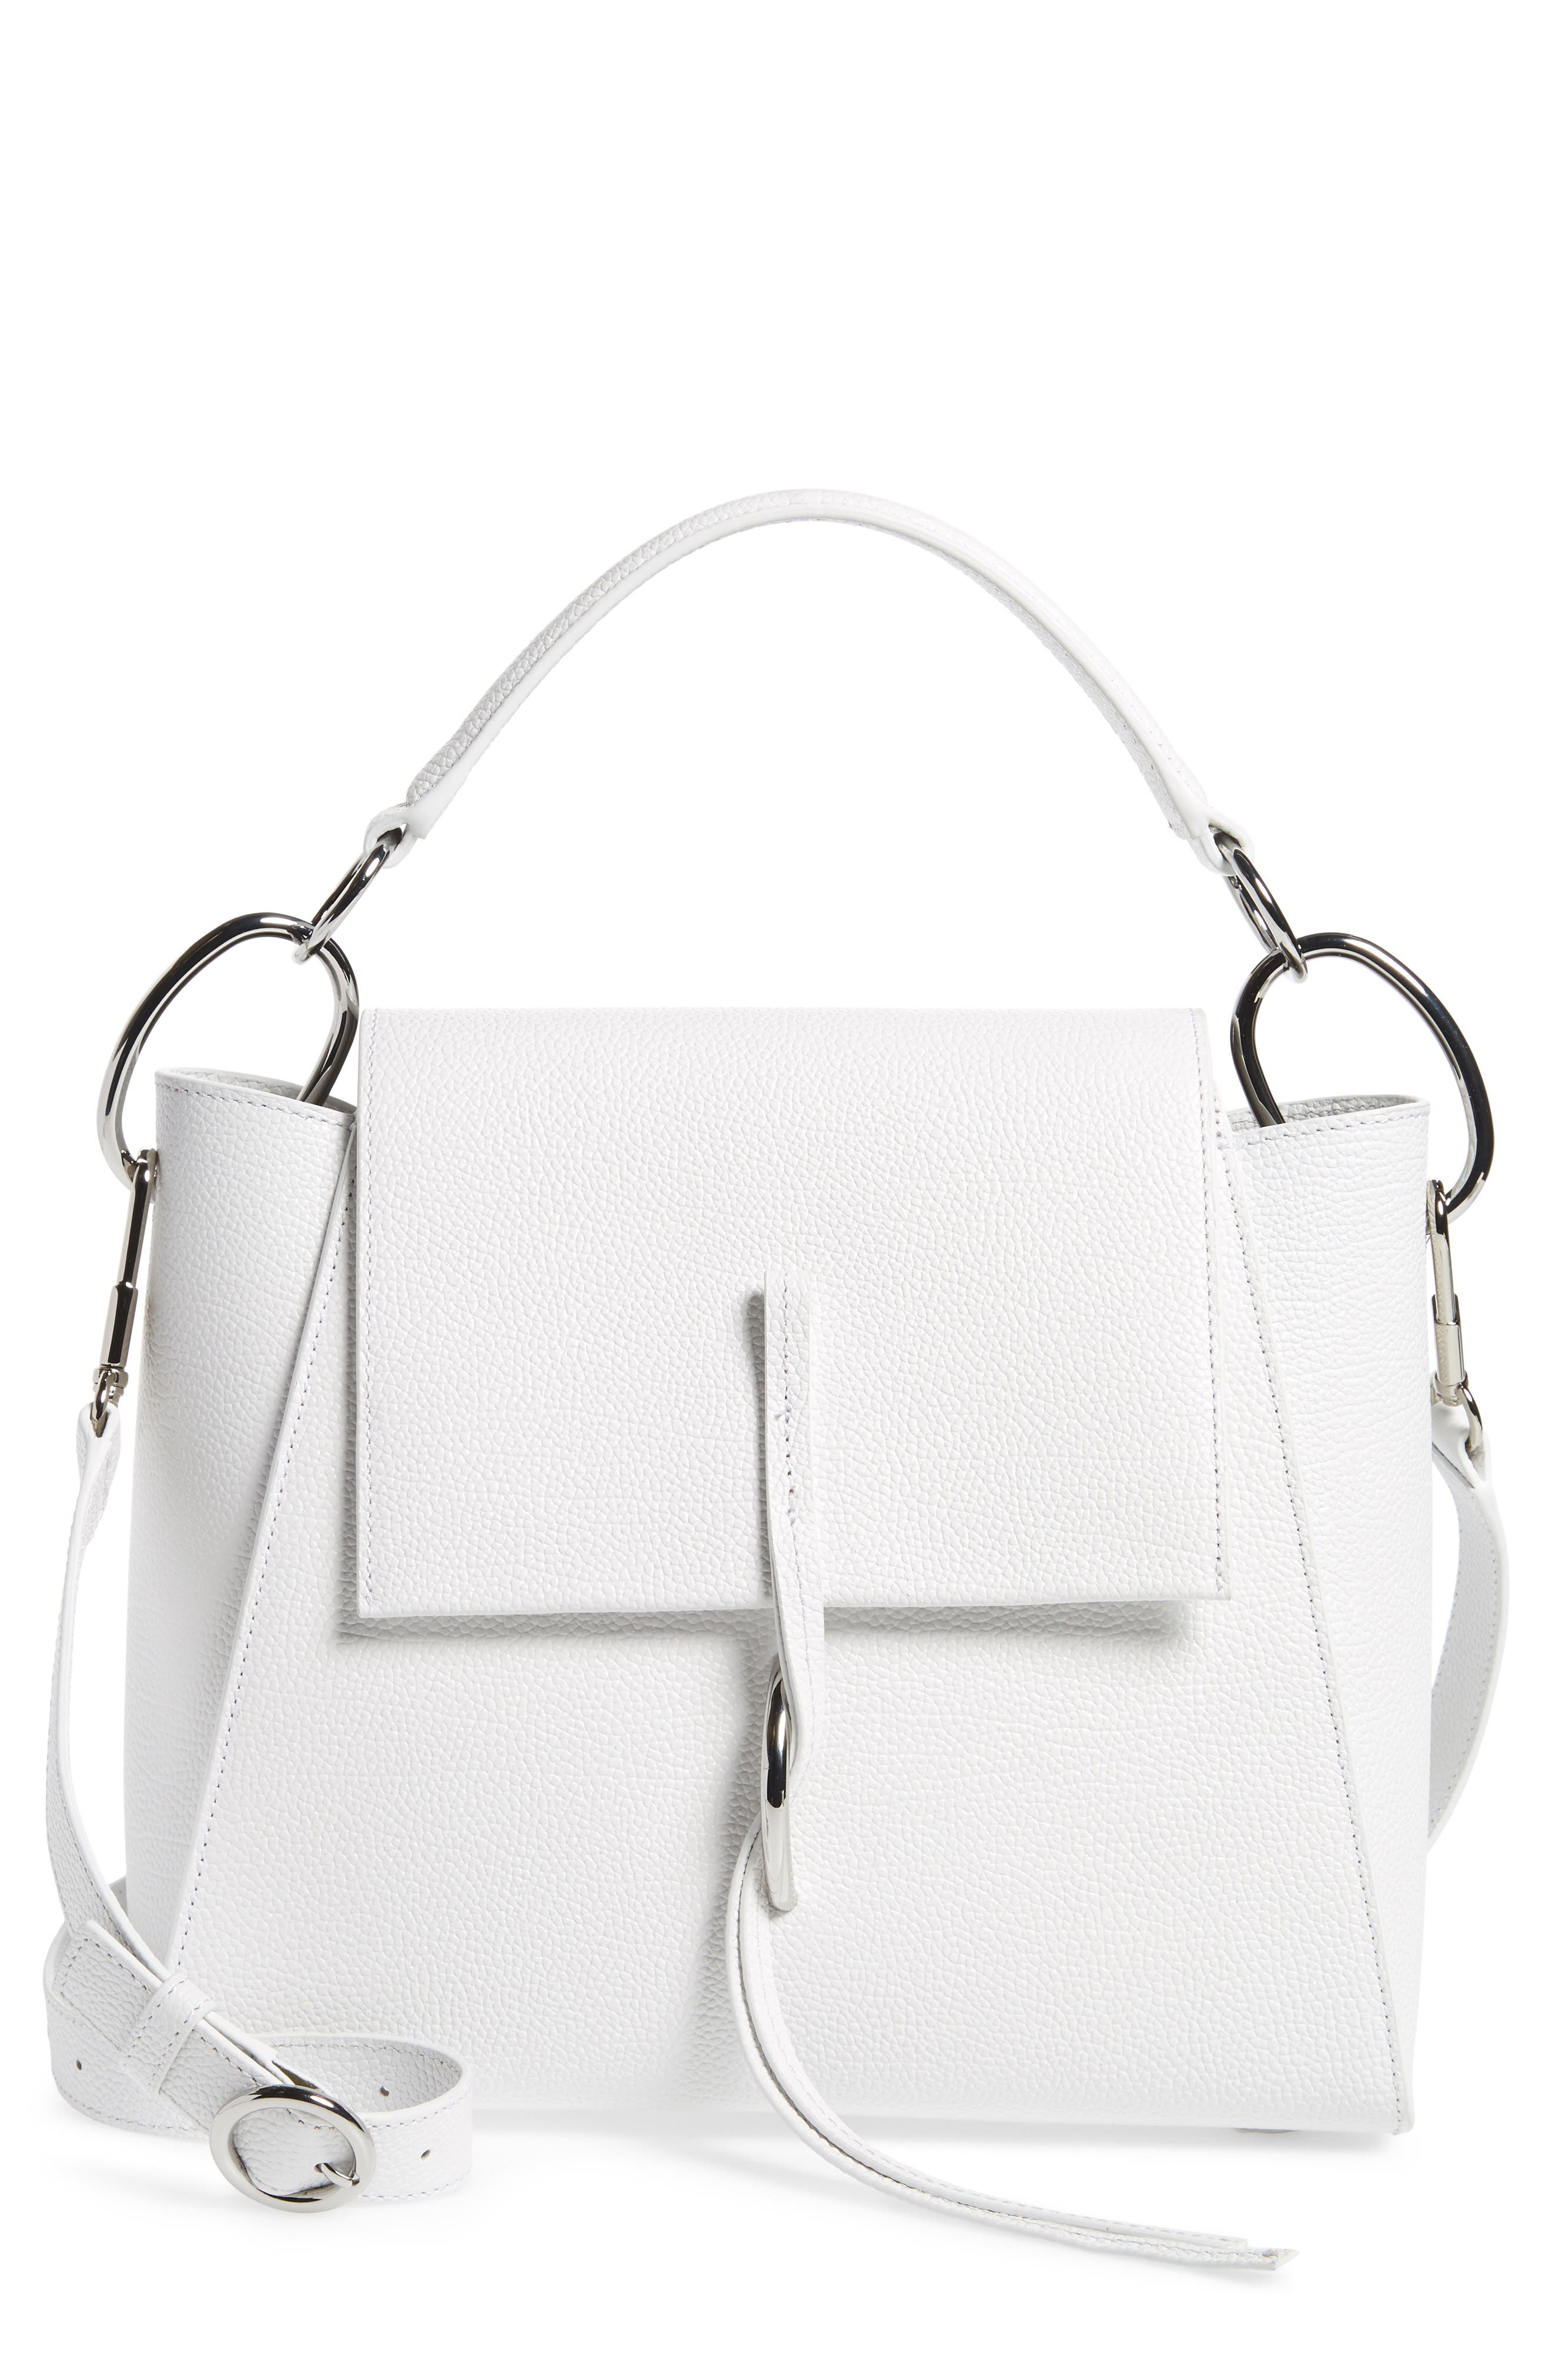 Leigh Top Handle Leather Satchel,                         Main,                         color, Off White